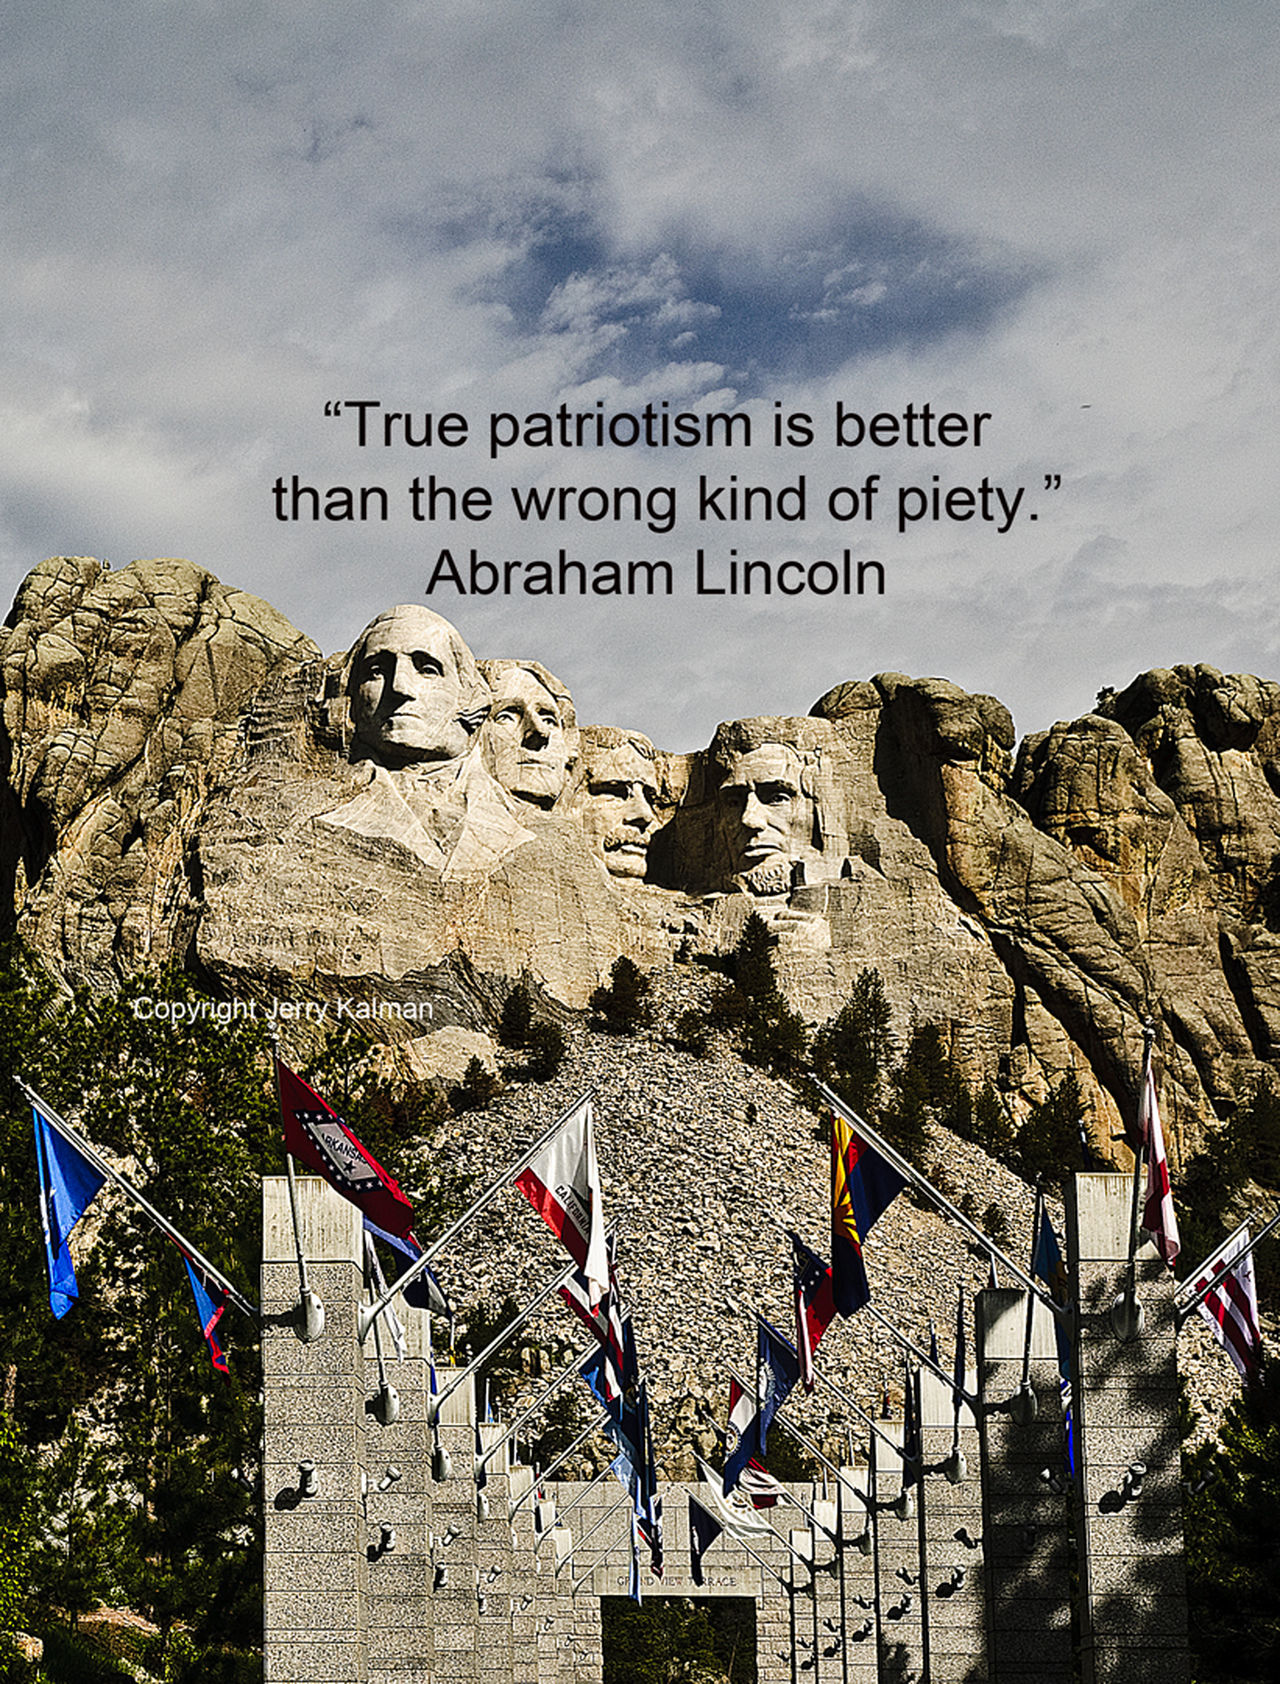 #AbrahamLincoln #quote on completion anniversary of #MtRushmore. If this #quotograph speaks to you, please share with others Faces Flag Lincoln Mount RTushmore National Monument Q Quote Quotograph